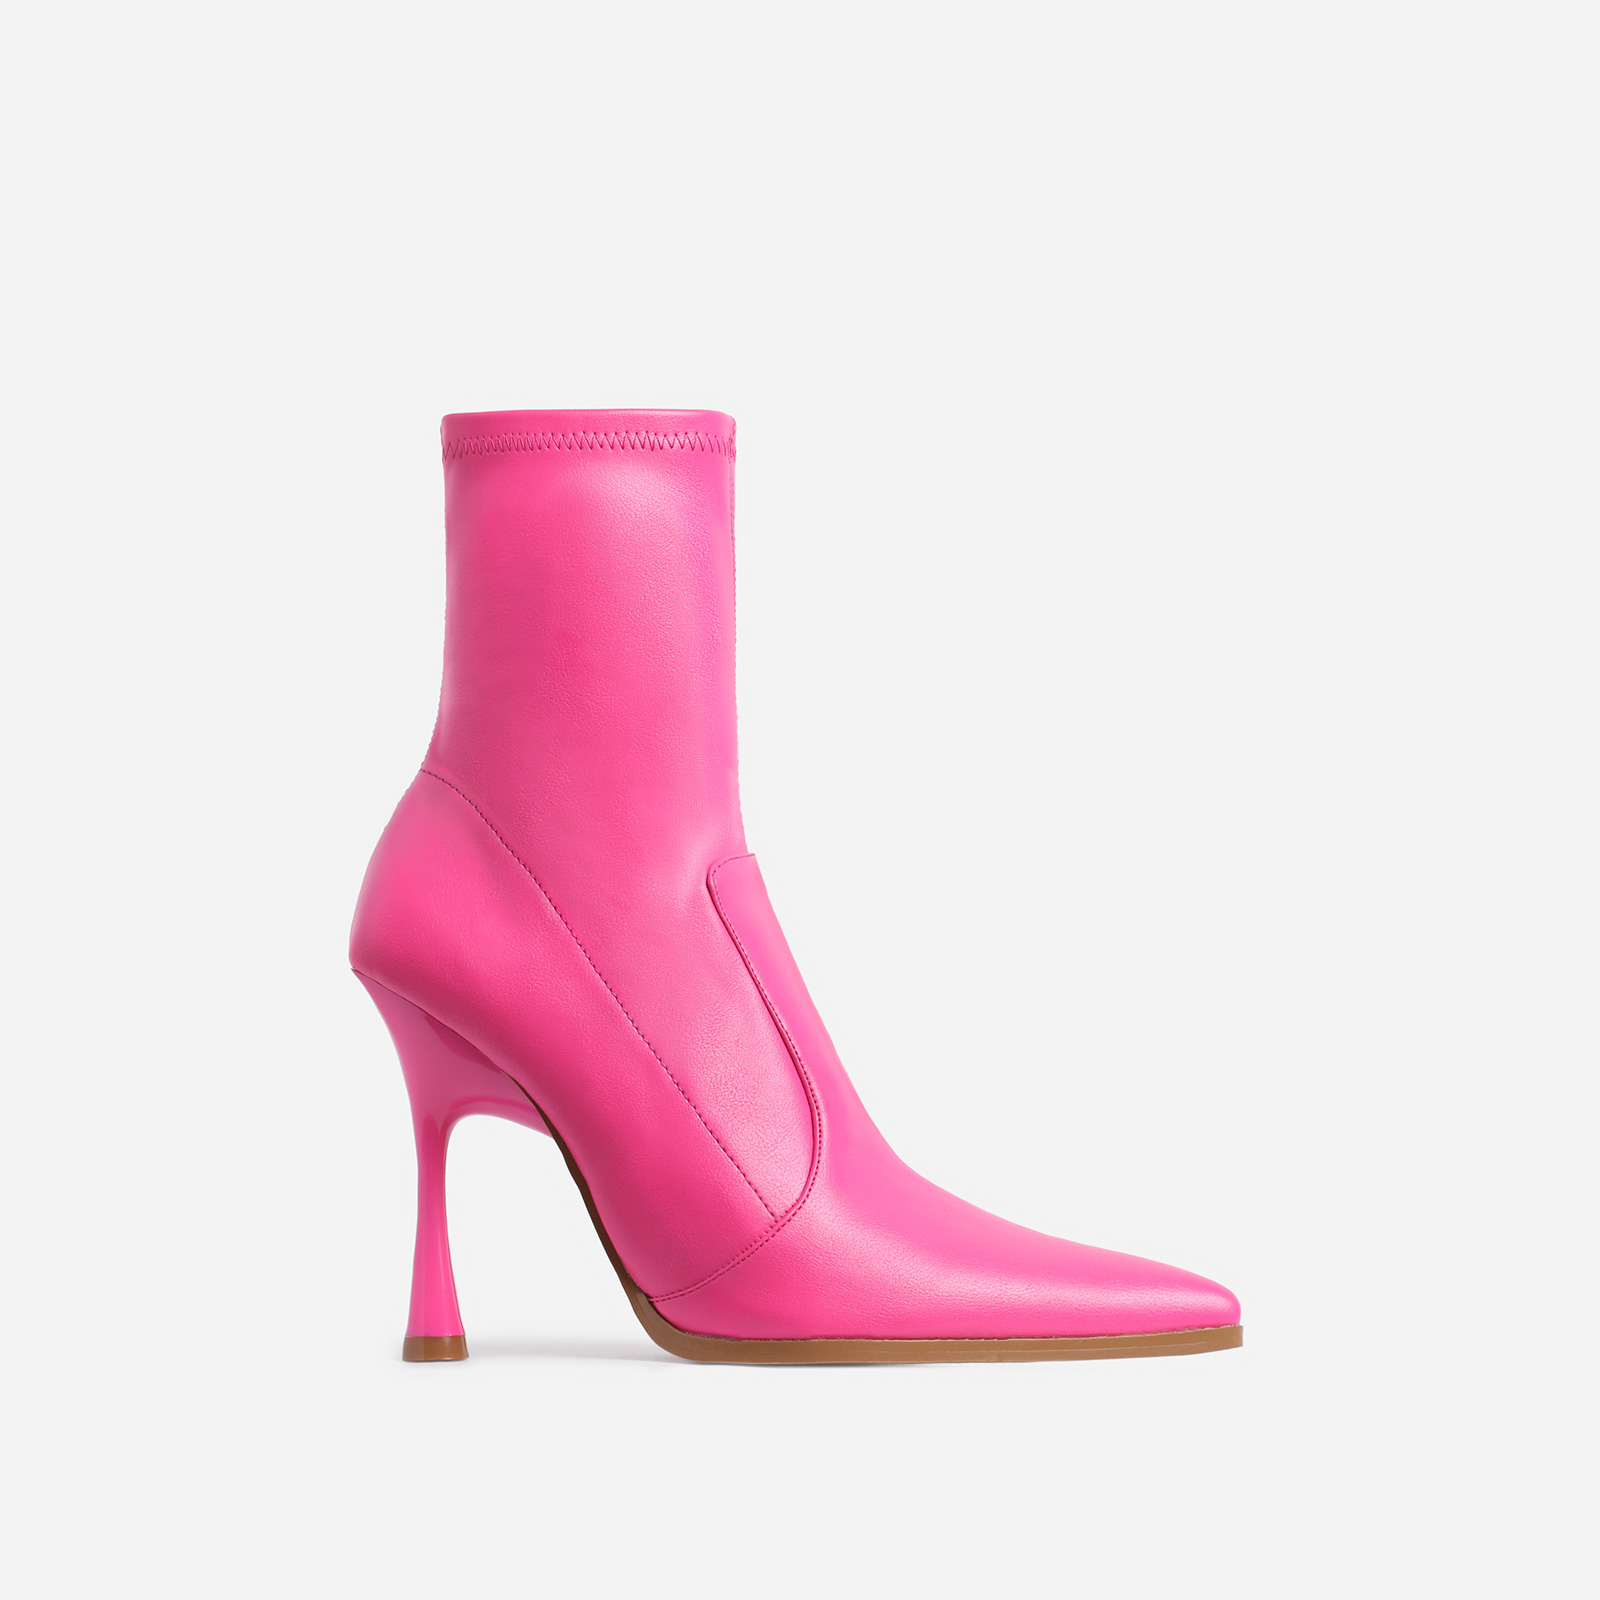 Aspen Curved Heel Ankle Sock Boot In Pink Faux Leather